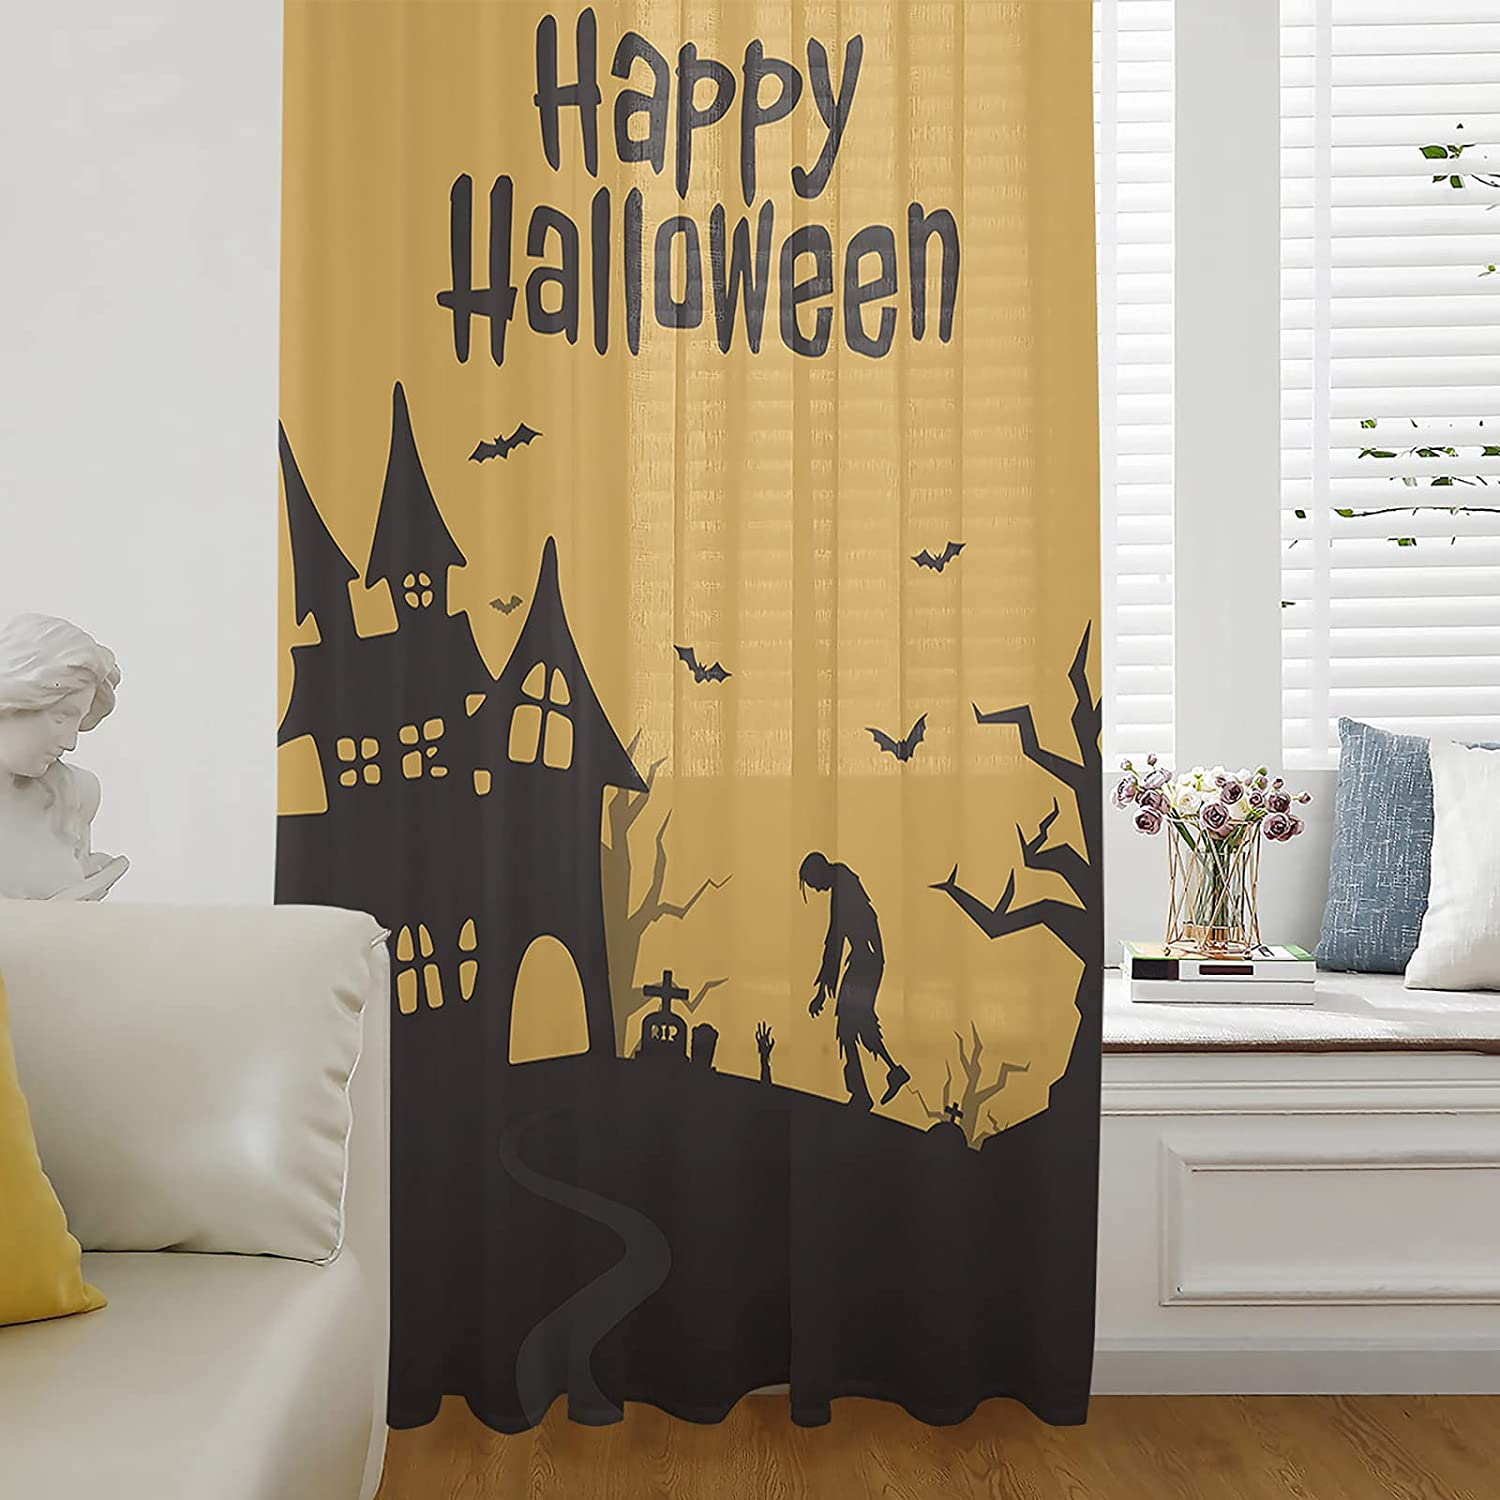 Sheer Window Curtains Breathable High quality Curtain Panel Happy Halloween A Same day shipping